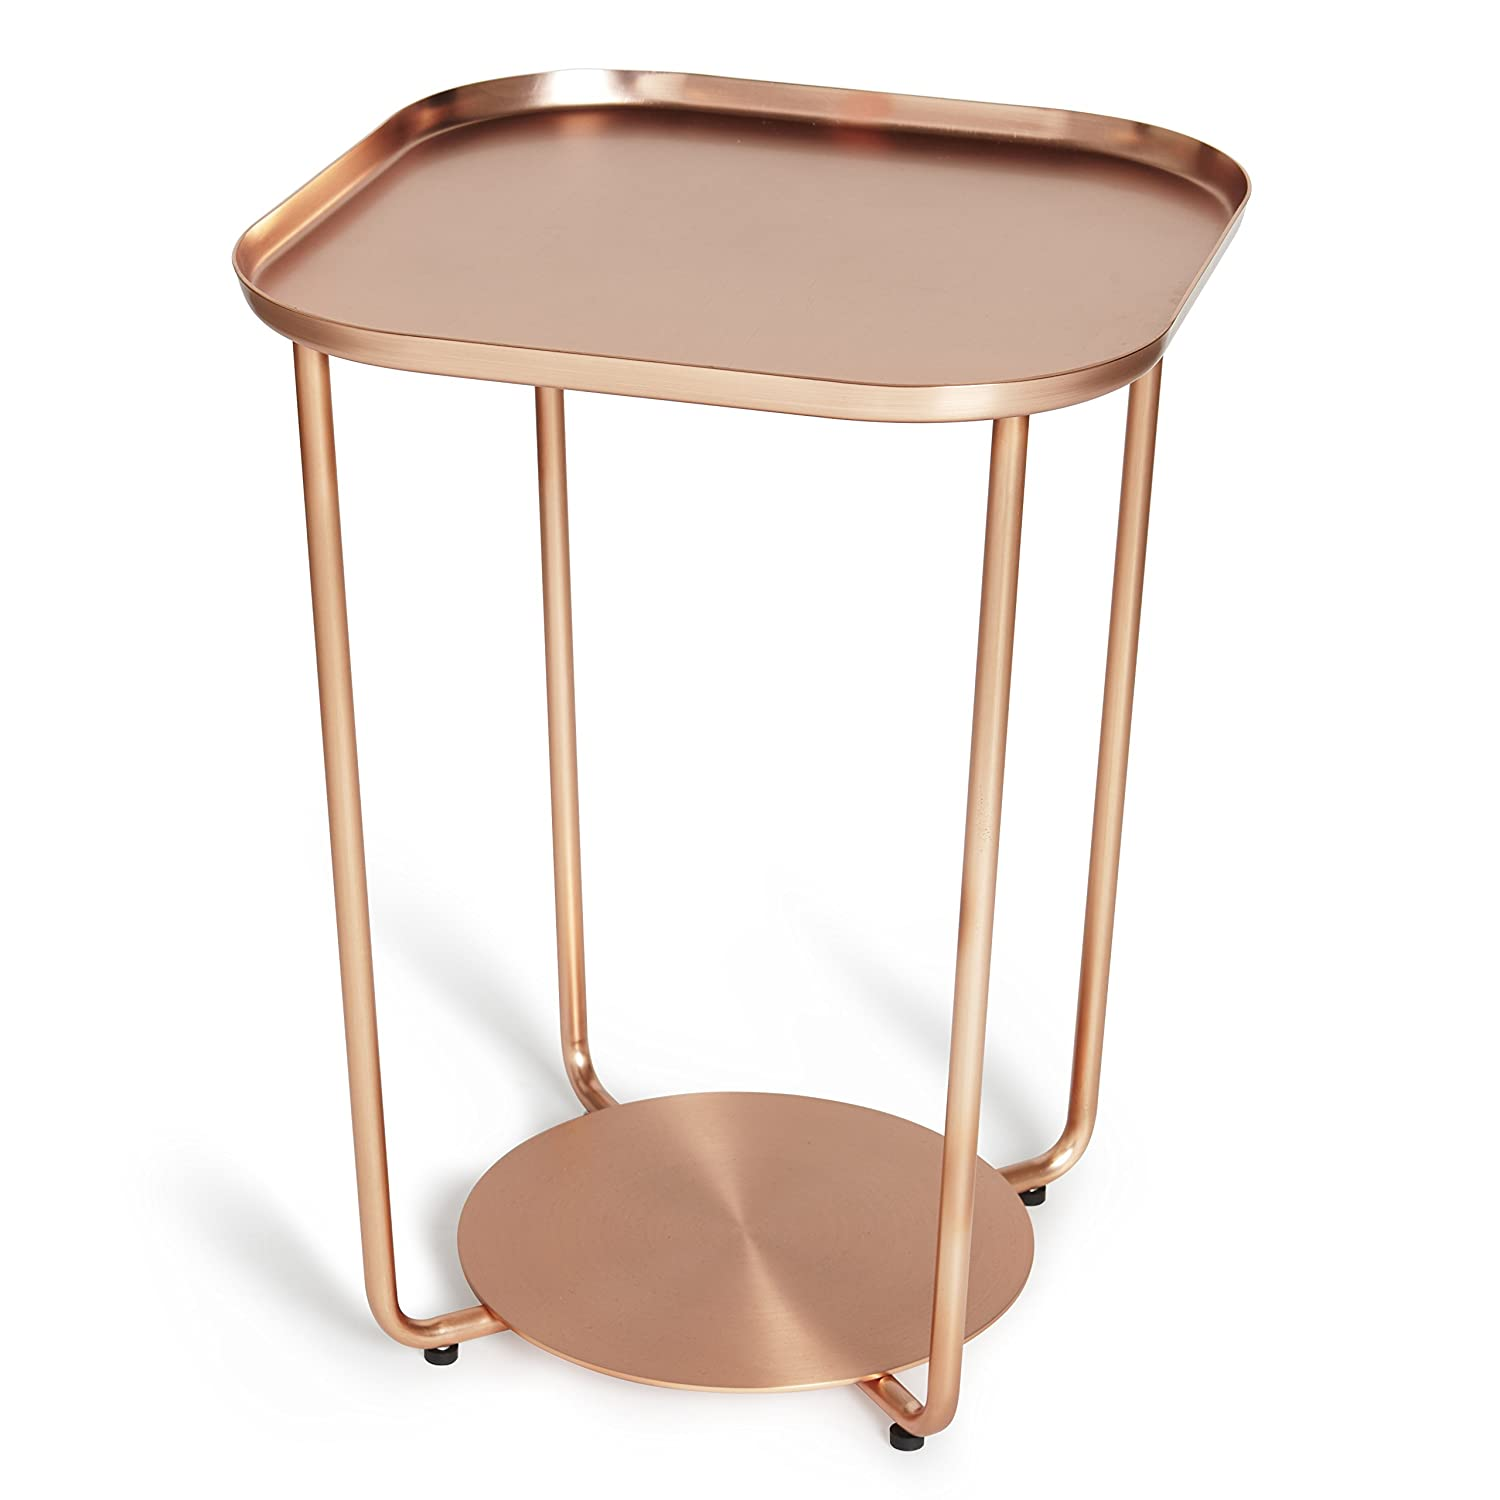 Amazon.com: Umbra Annex Side Table, Copper: Kitchen & Dining